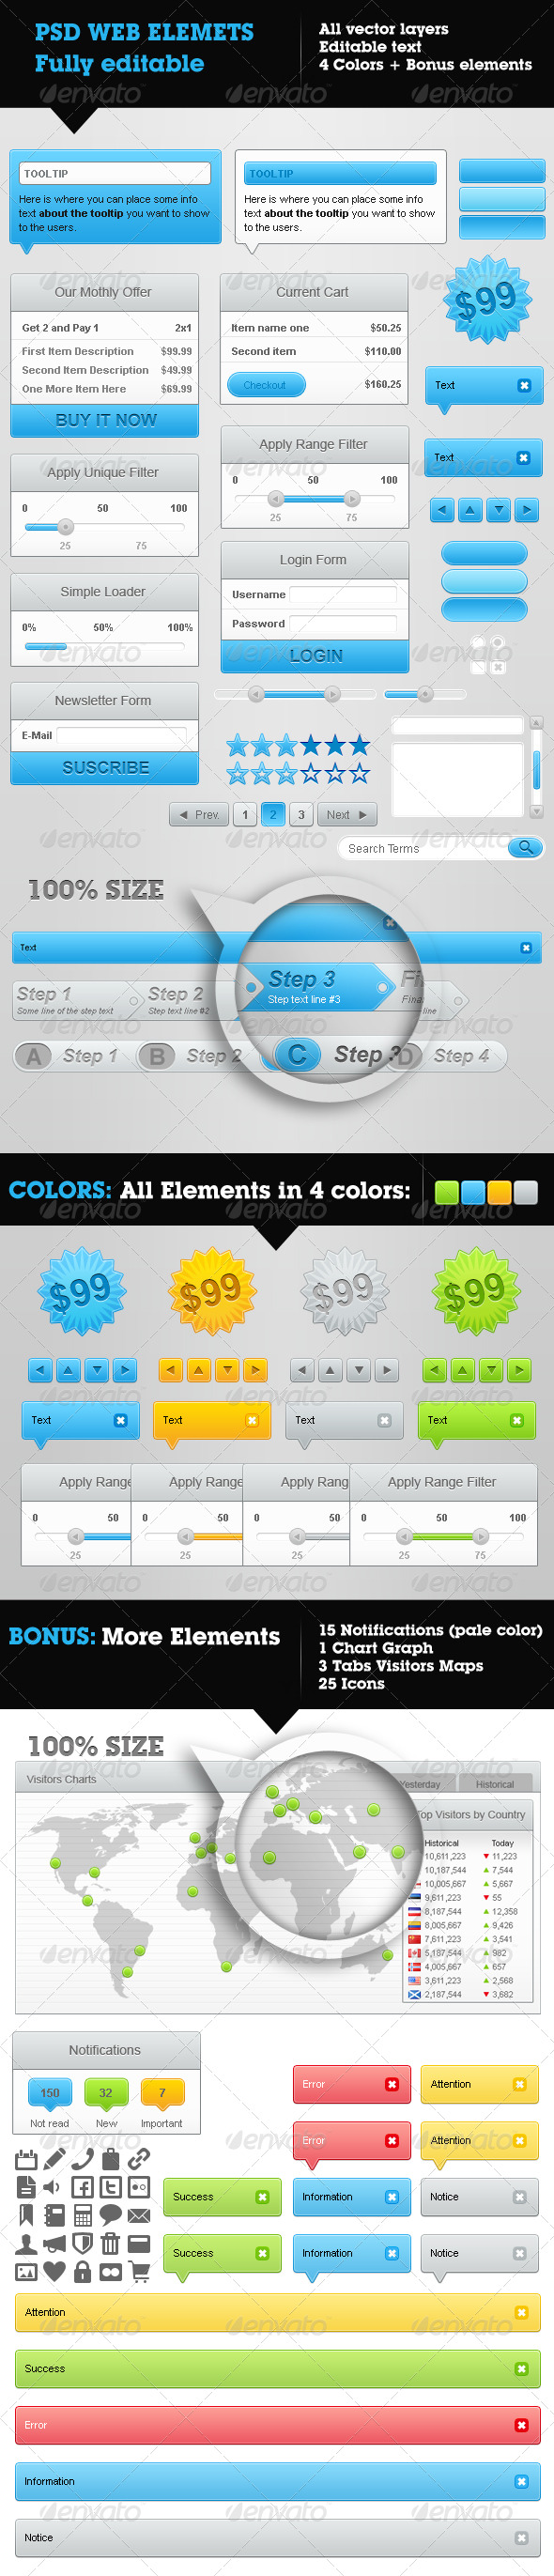 Web Elements Collection - 4 colors & Bonus - Miscellaneous Web Elements